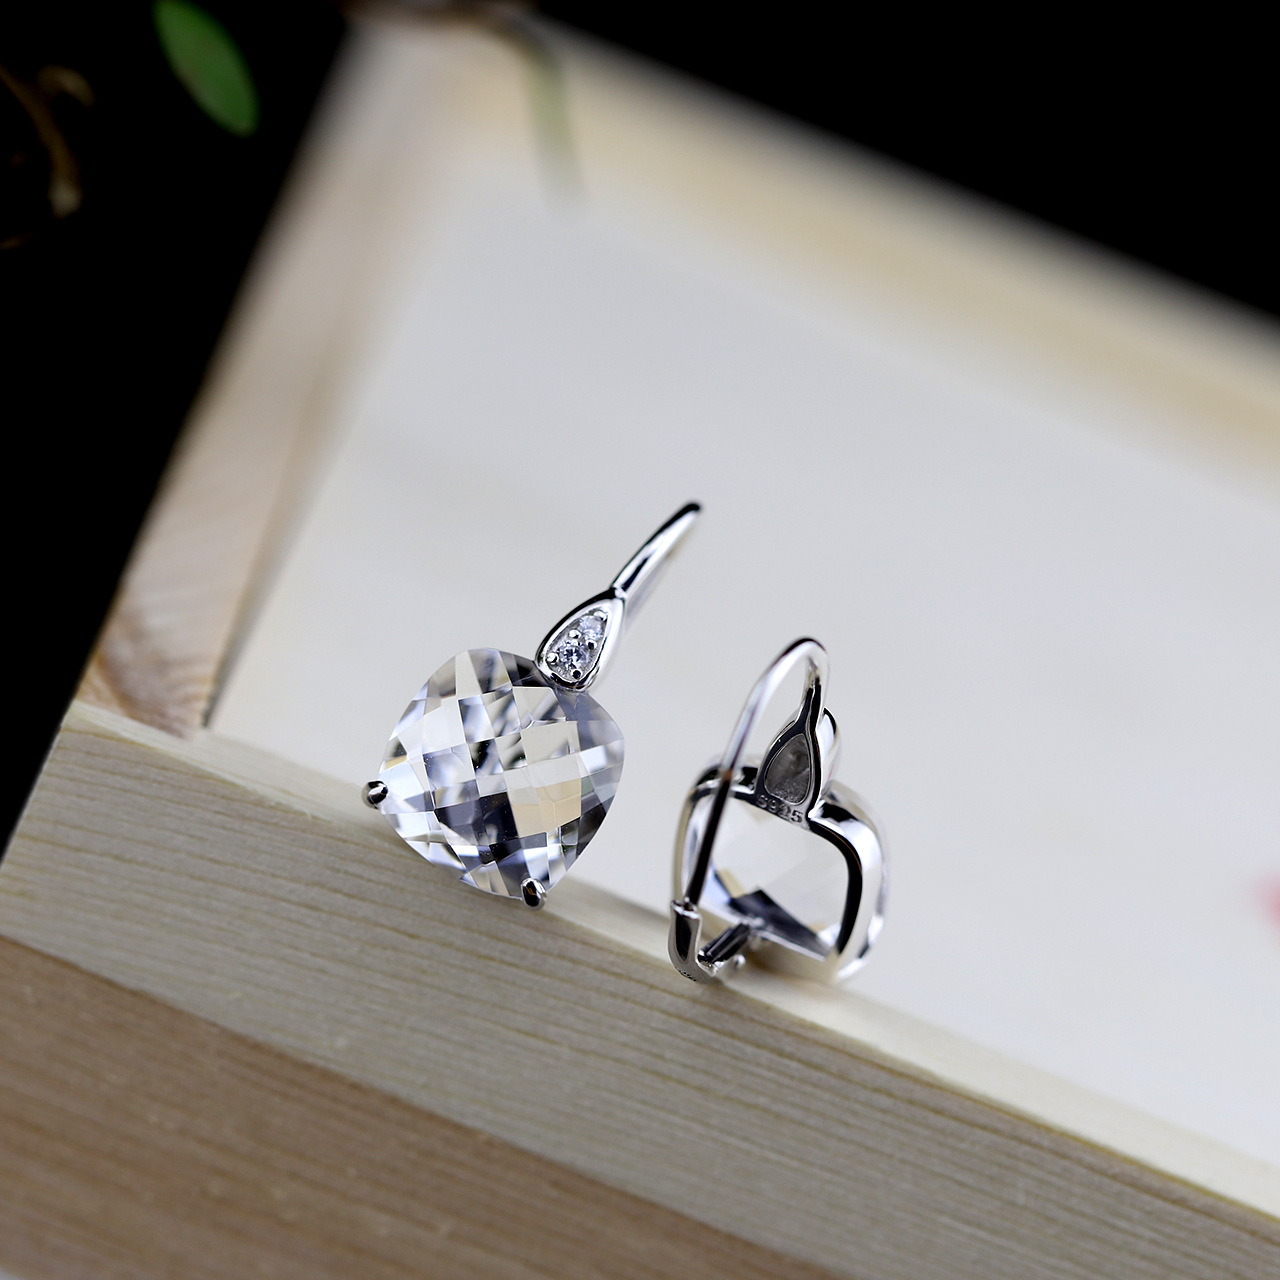 Silver Wholesale Fashion Earrings Wholesale S925 Sterling Silver Jewelry Lady Hand Cut Crystal Pendant wholesale